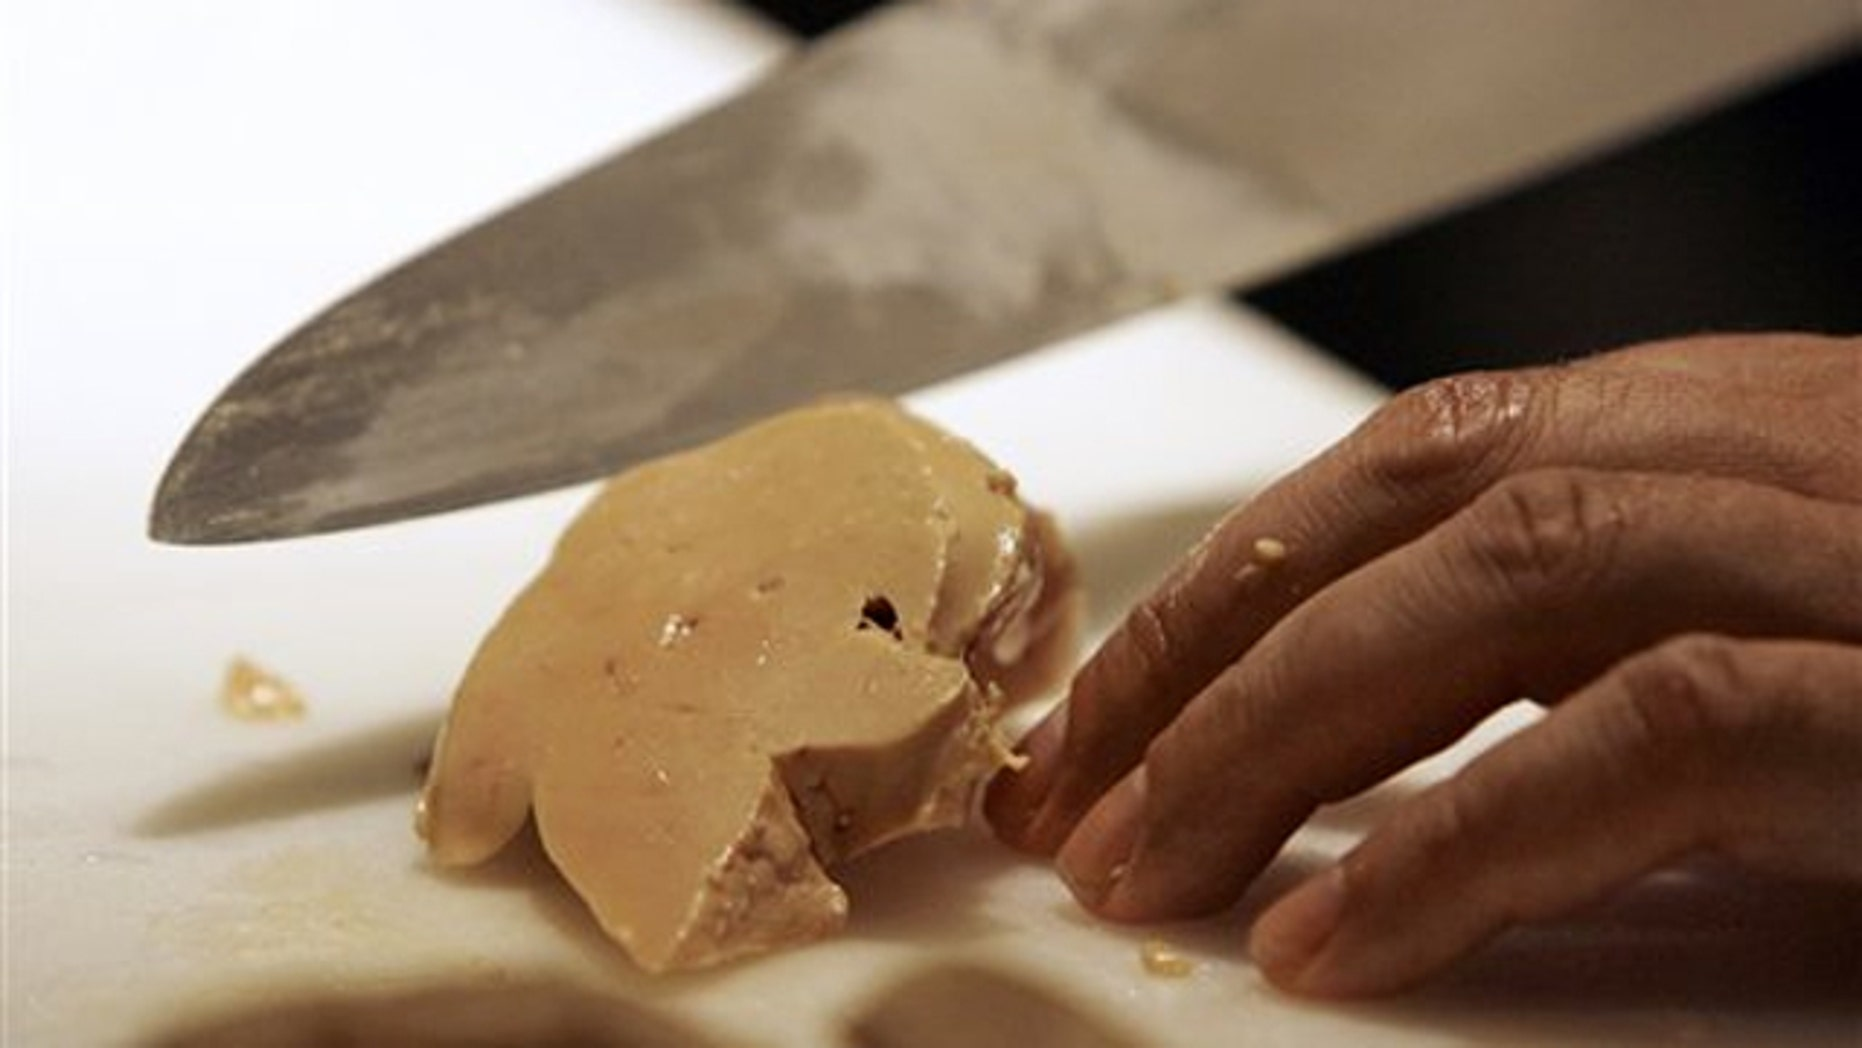 Todd Stein, the executive chef at MK in Chicago, slices a piece of foie gras.